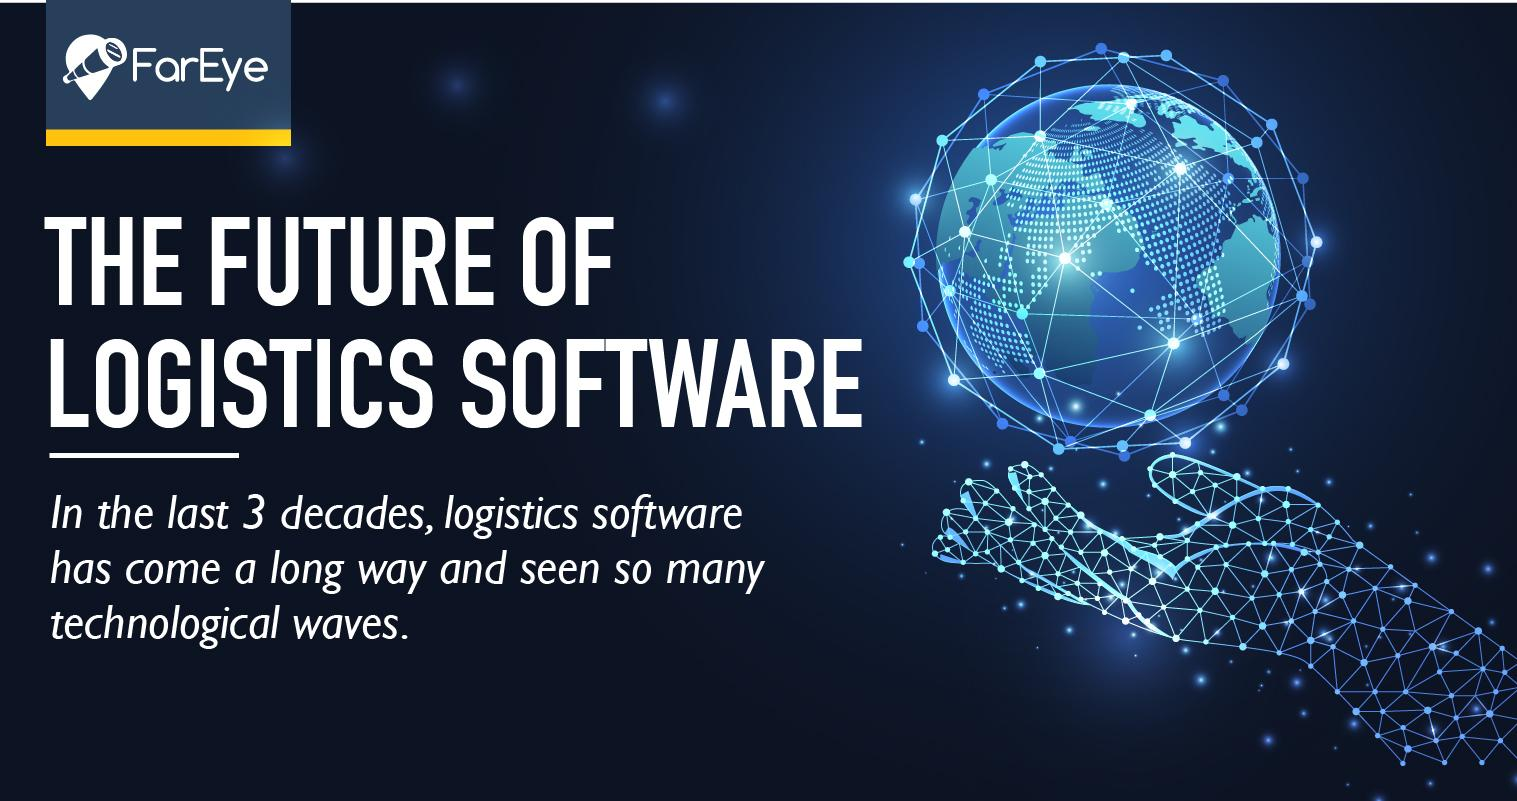 Future of Logistics Software